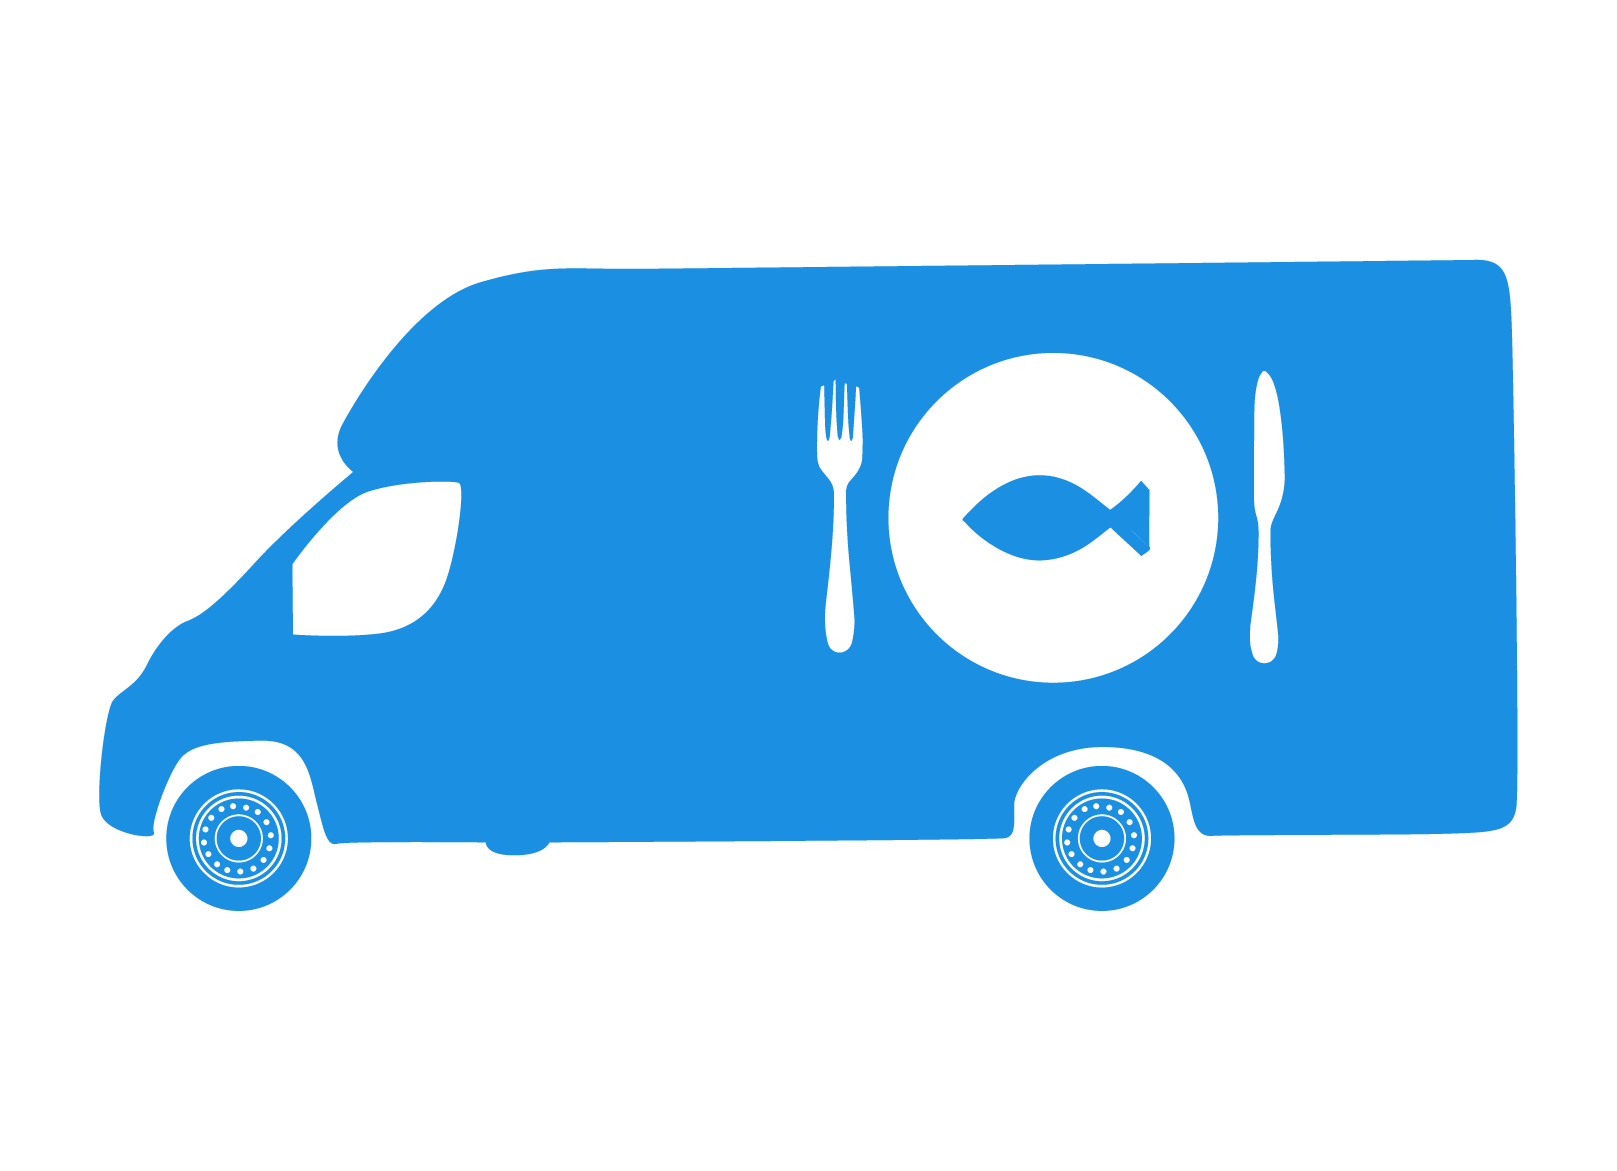 Fish & chips clipart clipart black and white stock Mobile fish and chip van and Catering Van Insurance clipart black and white stock